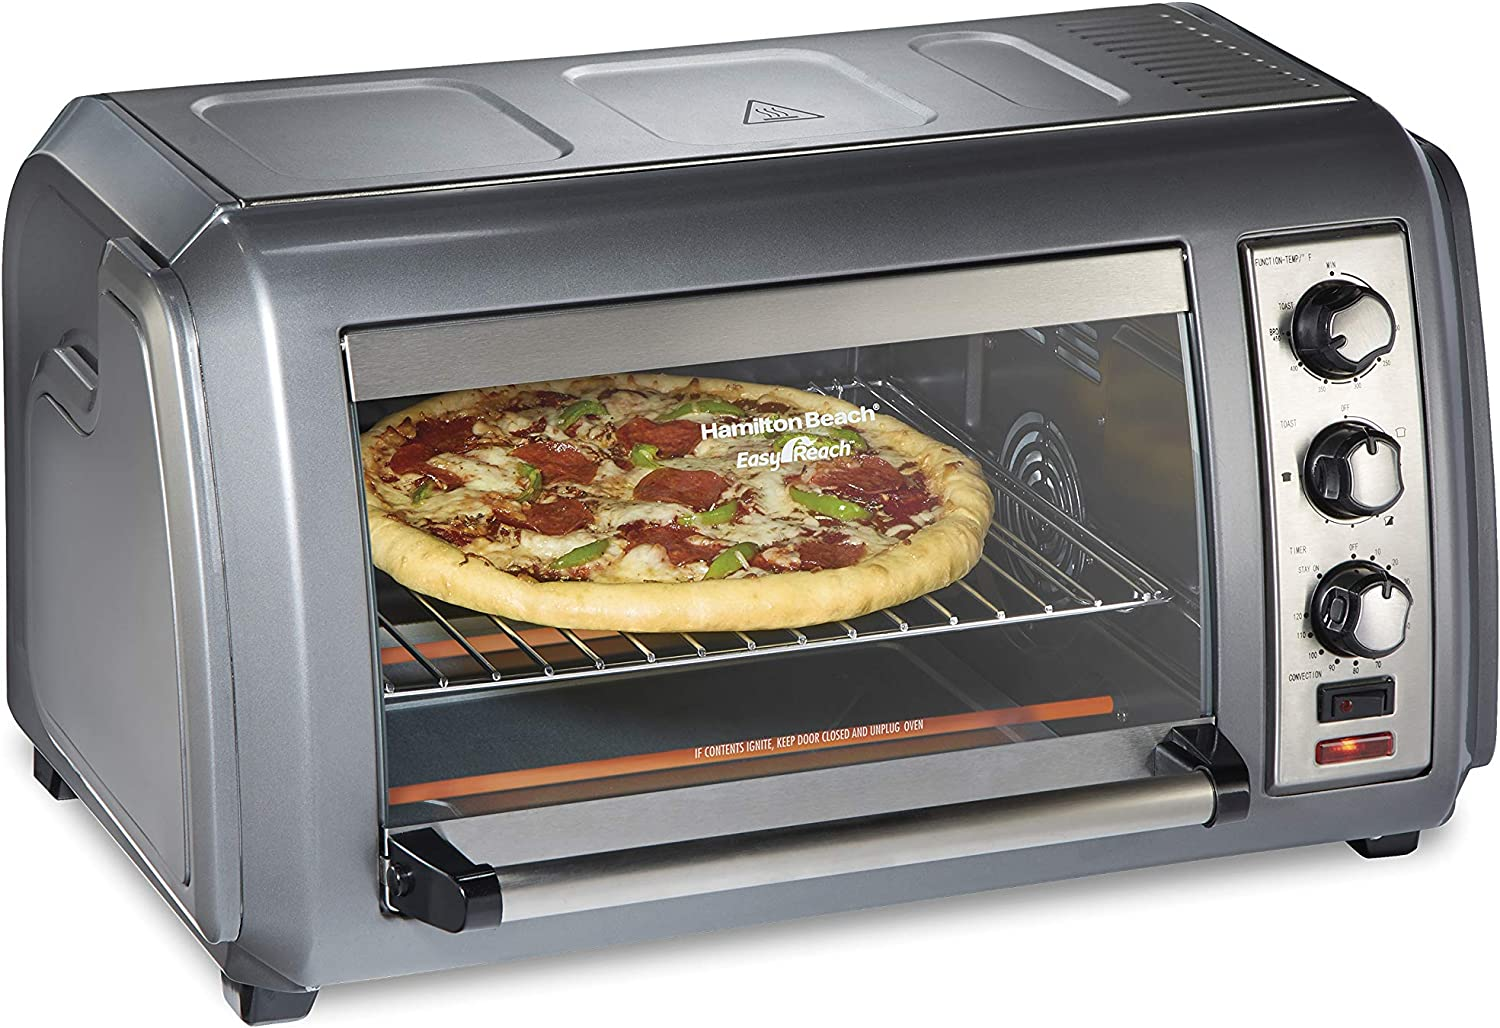 Hamilton Beach Countertop Convection Toaster Oven with Easy Reach Roll-Top Door, 6-Slice, Stainless Steel (31434)